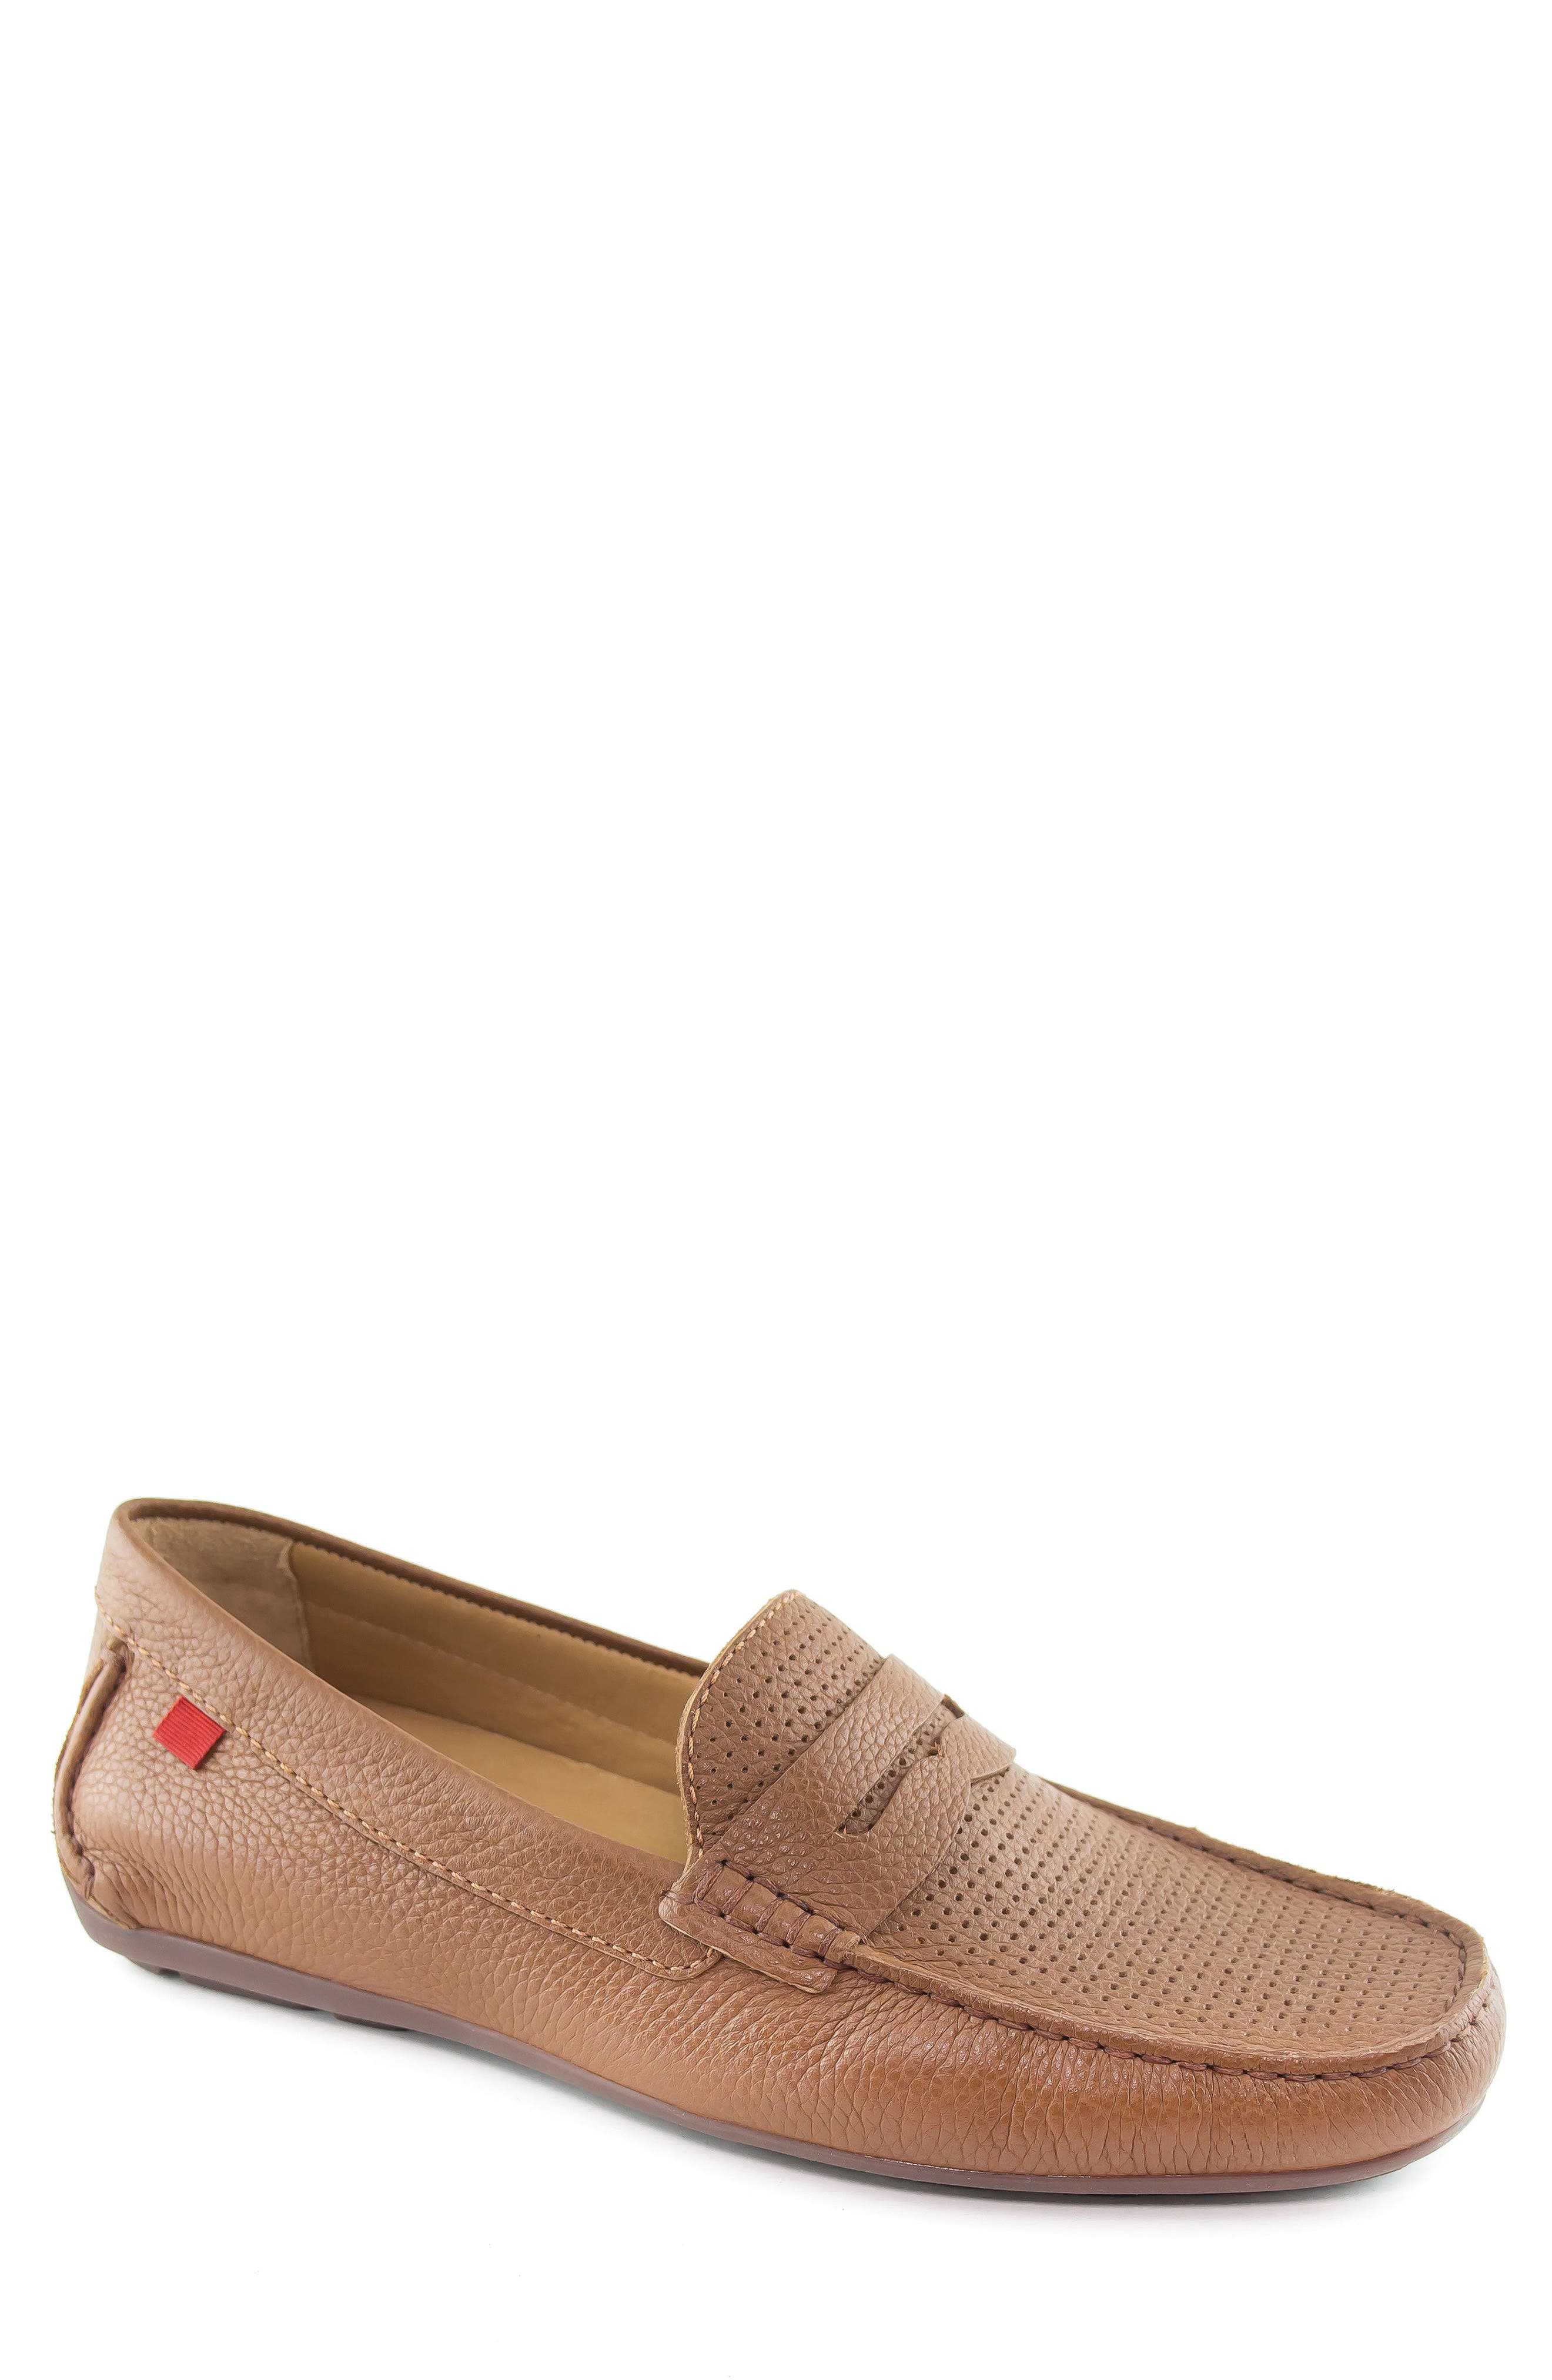 'Union Street' Penny Loafer